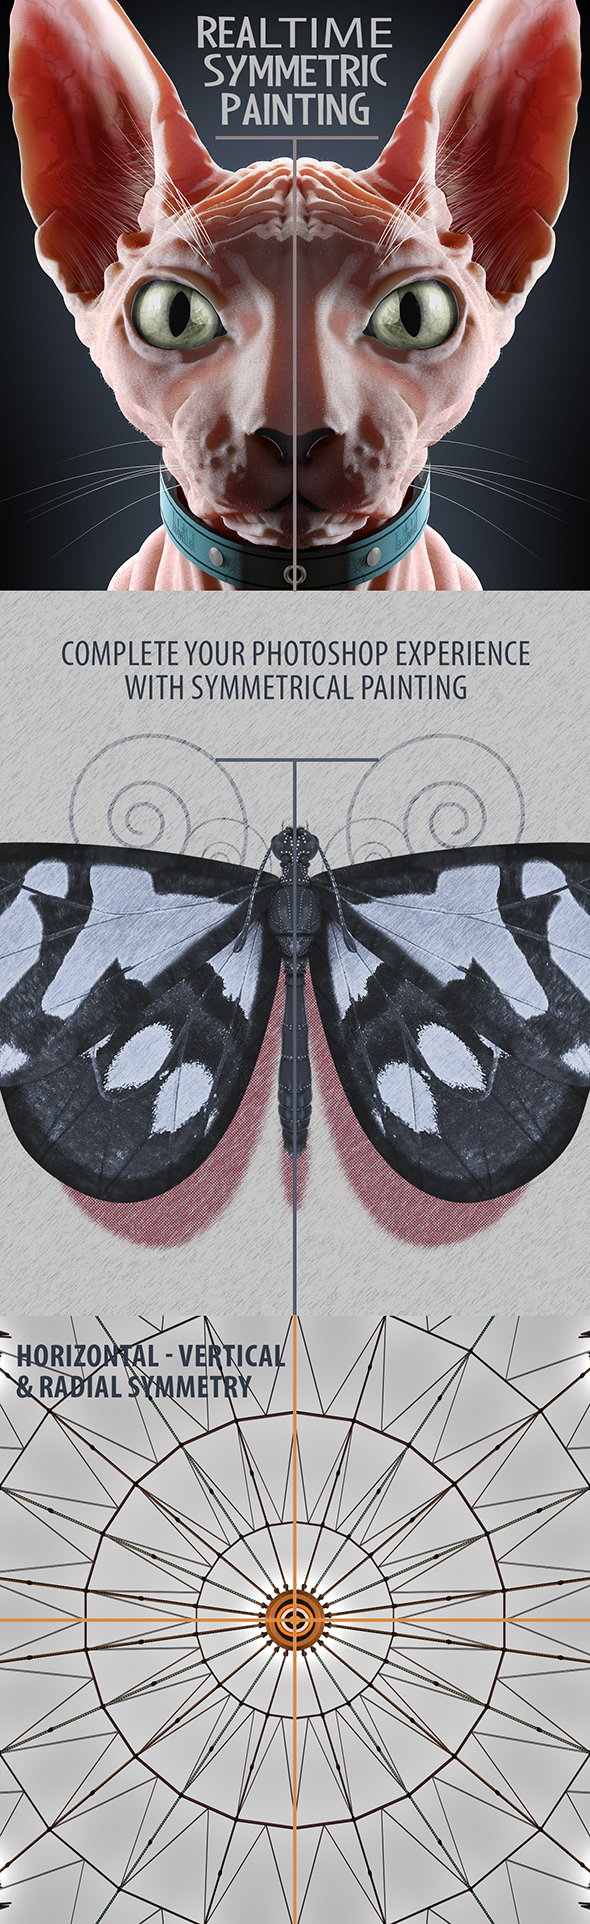 Realtime Symmetry Painting - Photoshop Add-ons